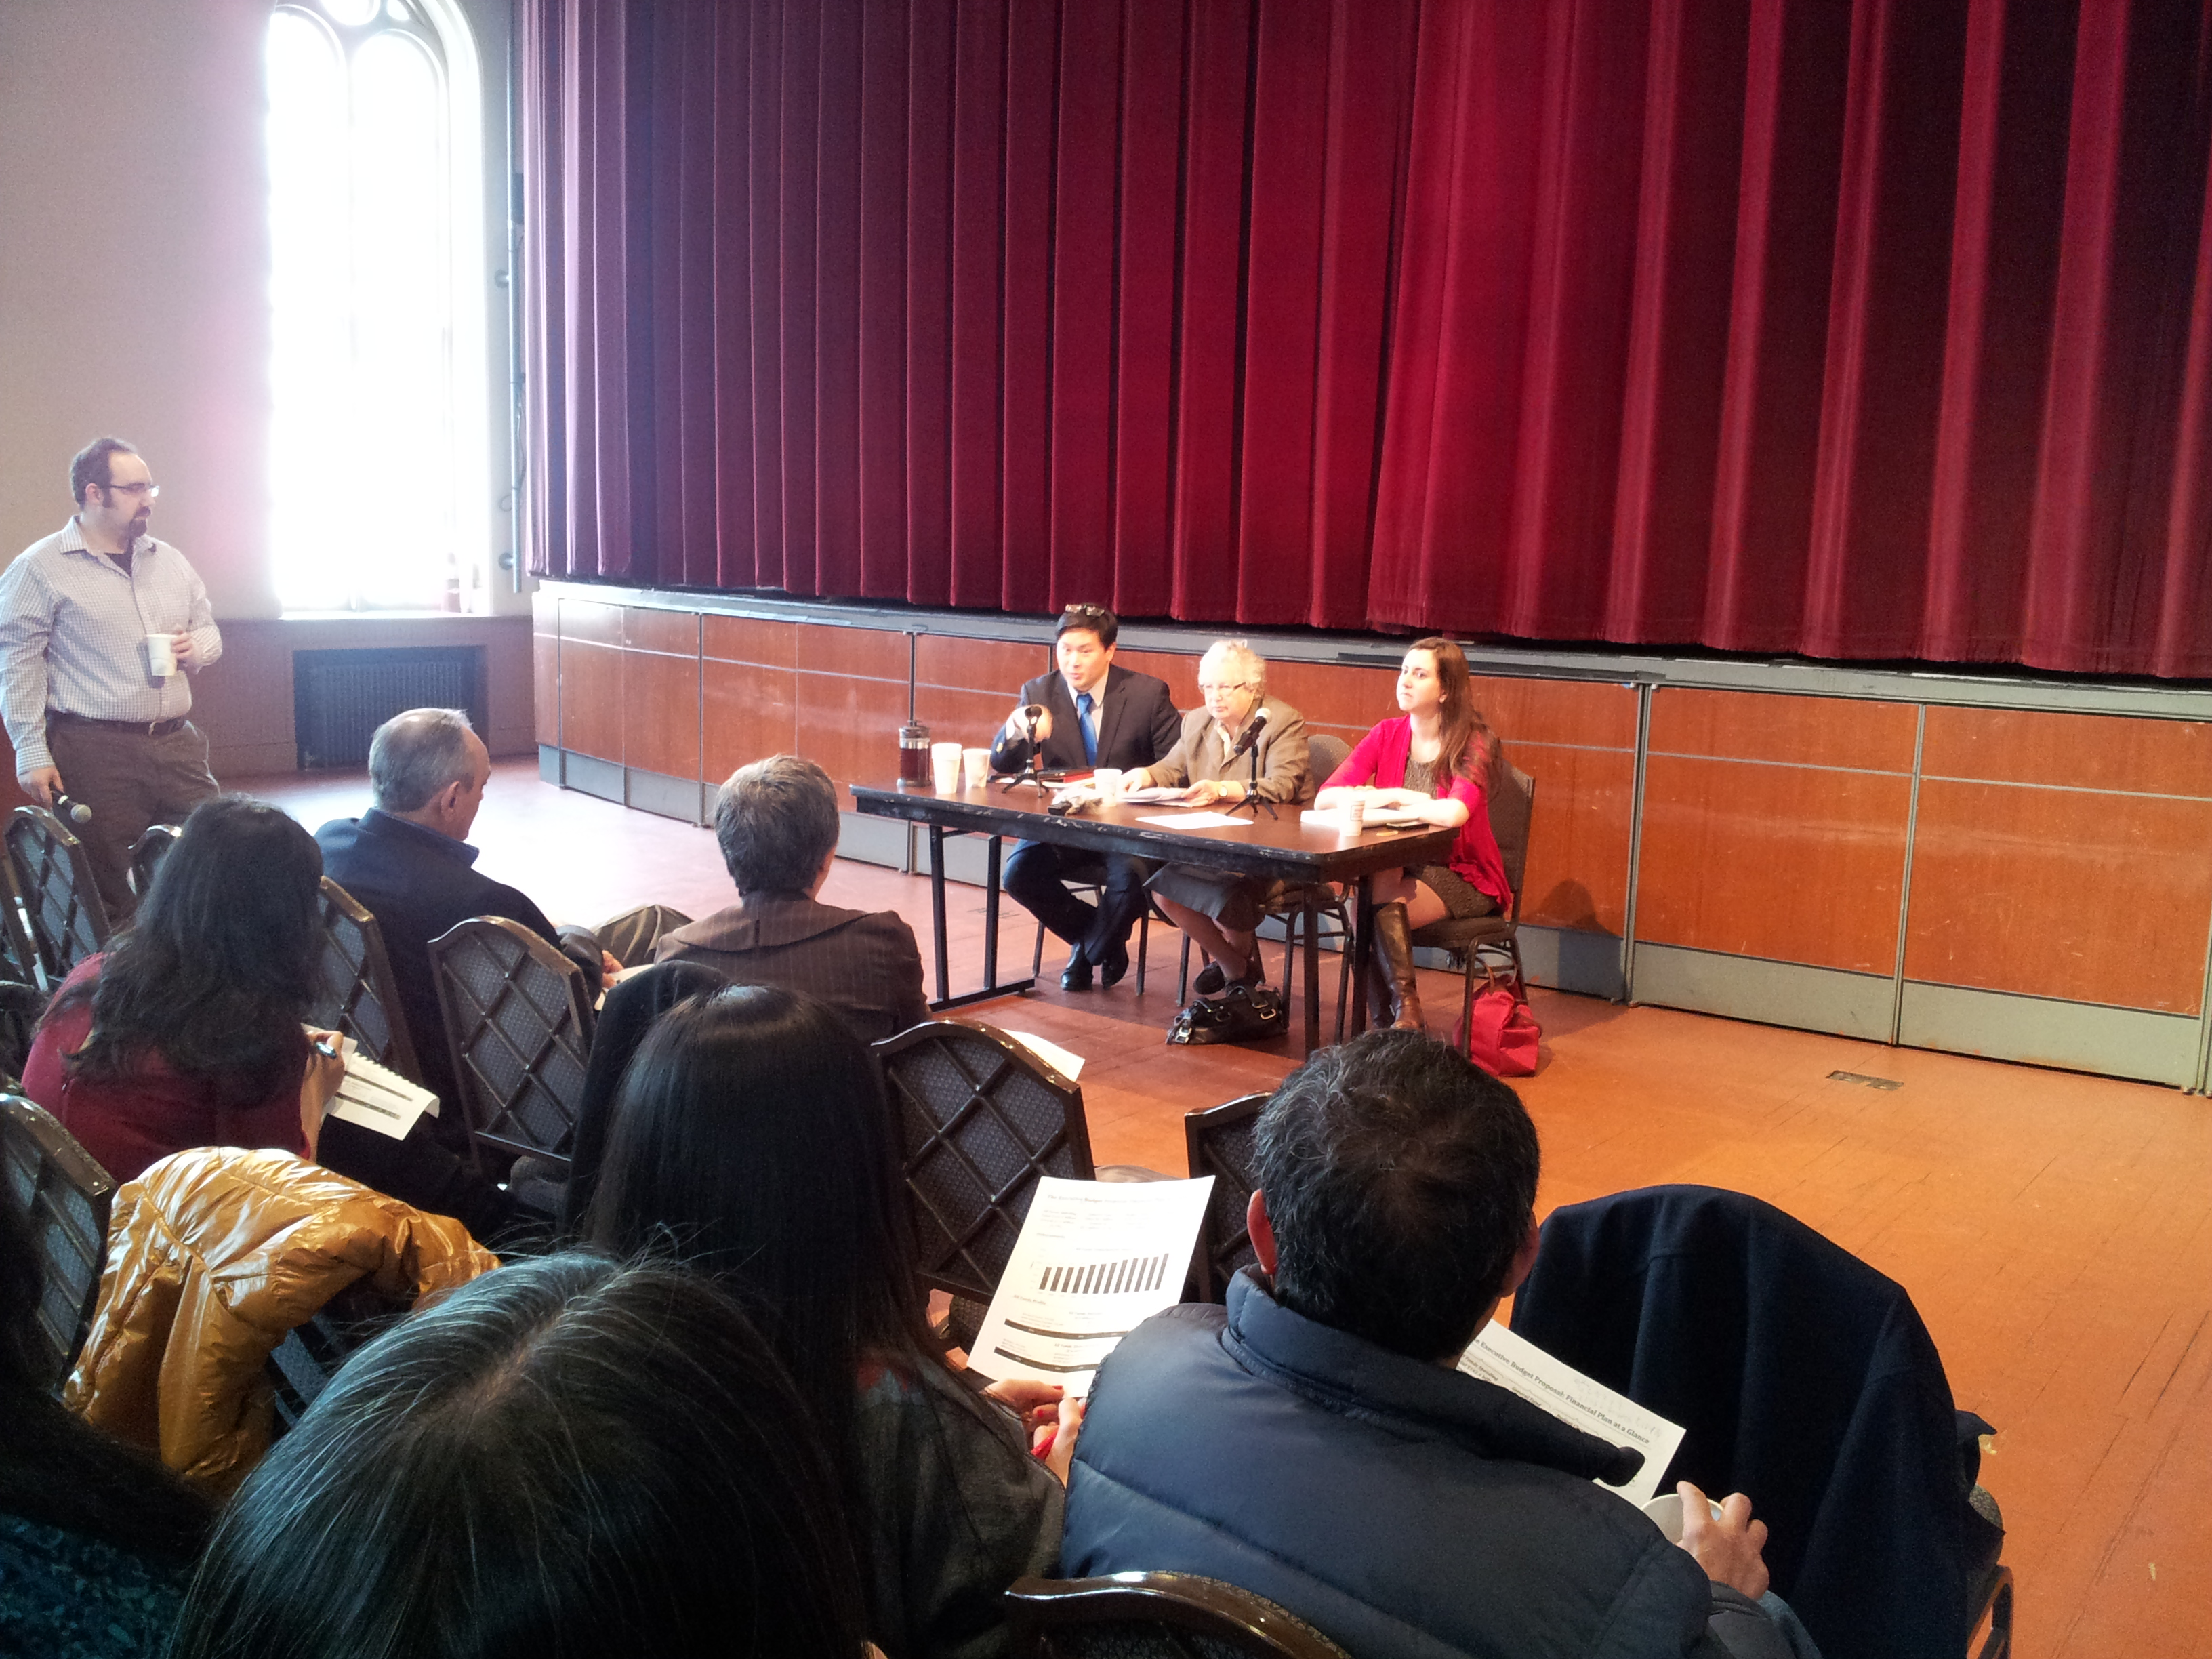 Assemblywoman Nily Rozic joins State Senator Toby Ann Stavisky and Assemblymember Ron Kim to discuss the state budget process at Flushing Town Hall.